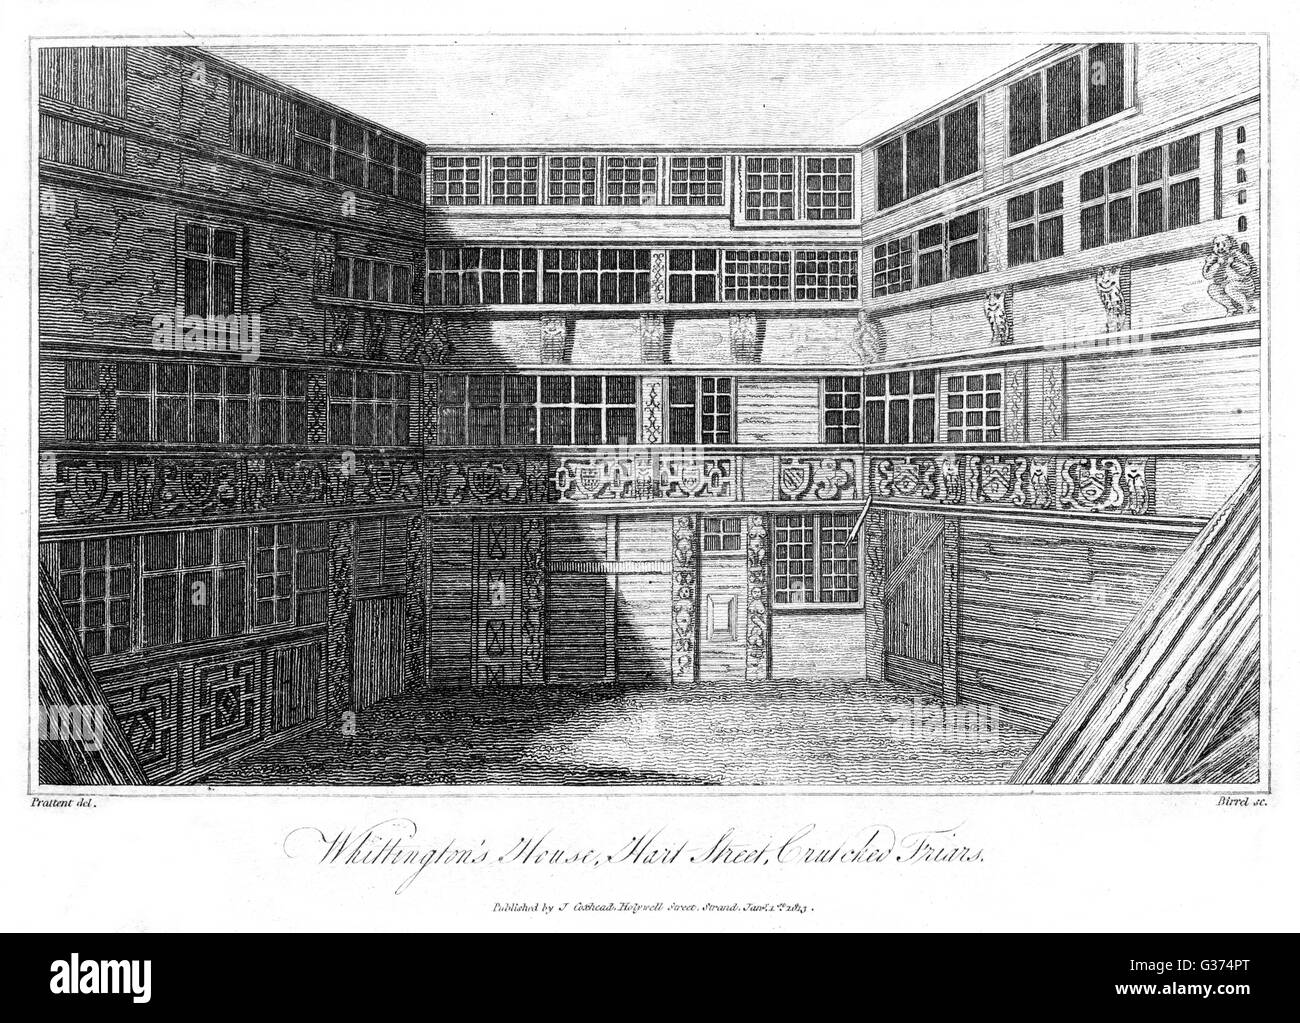 WHITTINGTON HOUSE, Hart  Street, Crutched Friars,  London - the reputed home of  Richard Whittington, Mayor of  - Stock Image